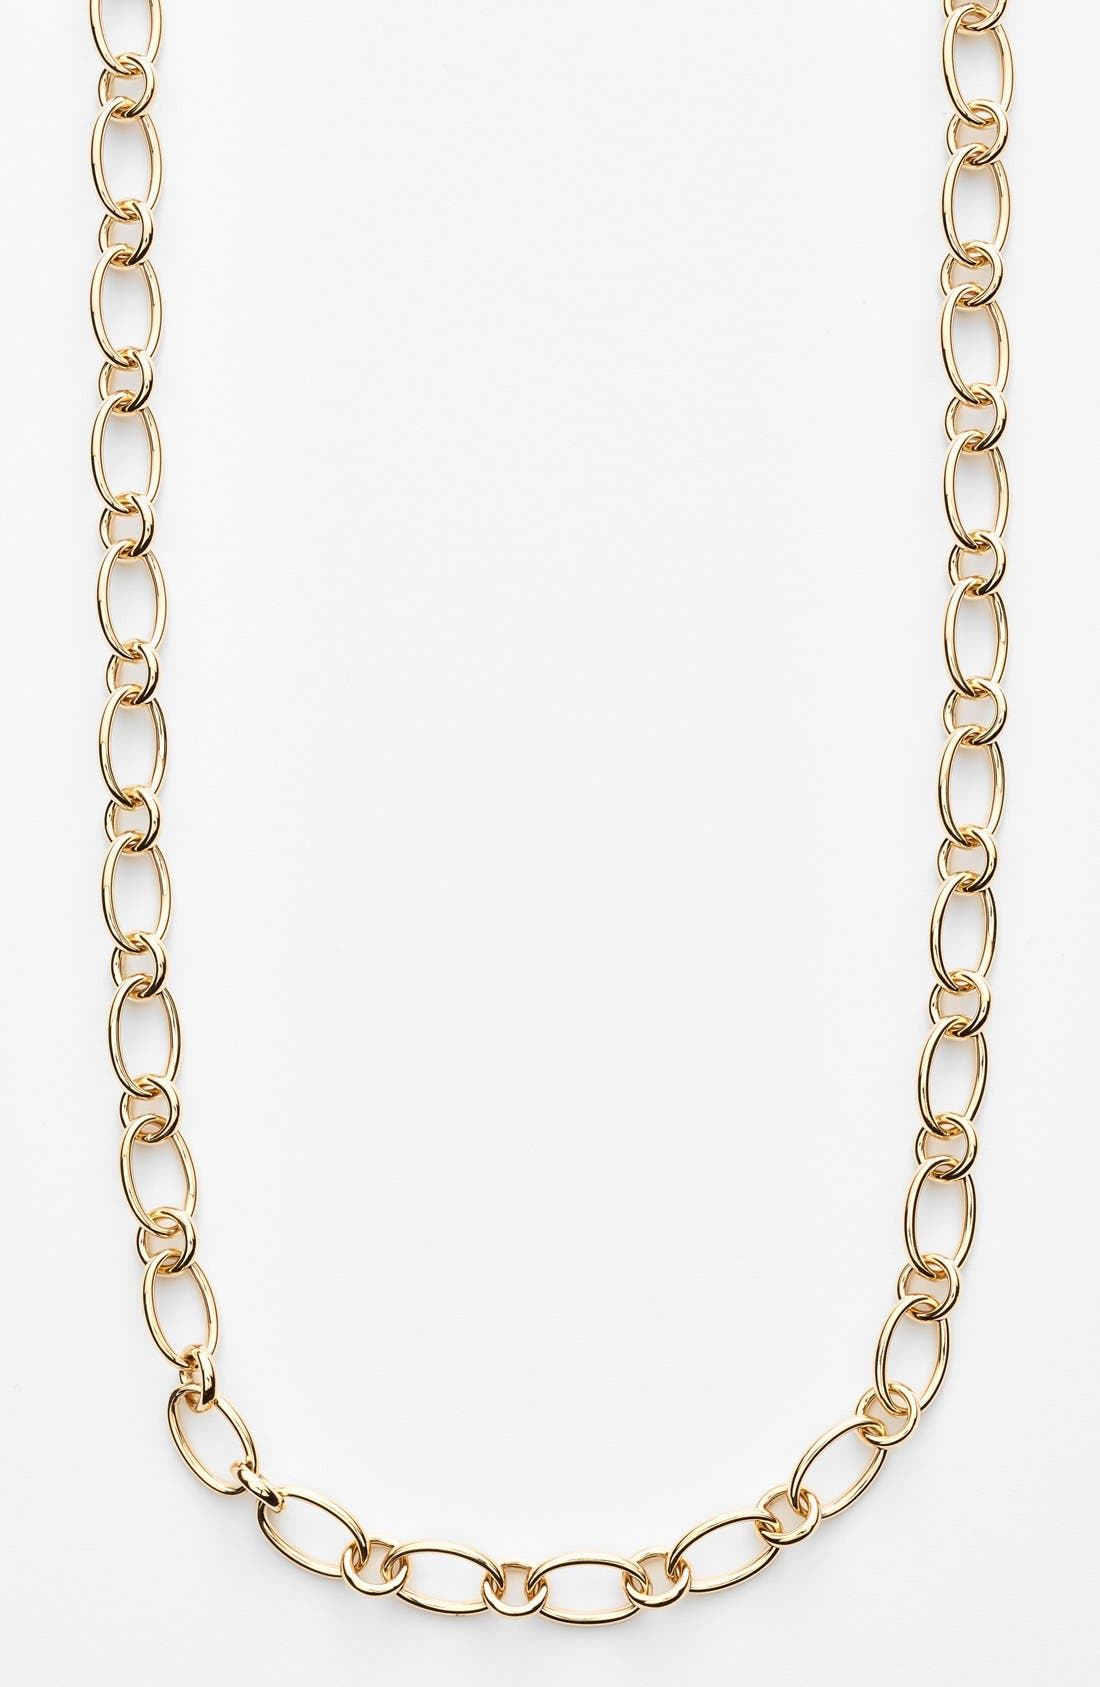 Main Image - Roberto Coin 'Designer Gold' Link Necklace